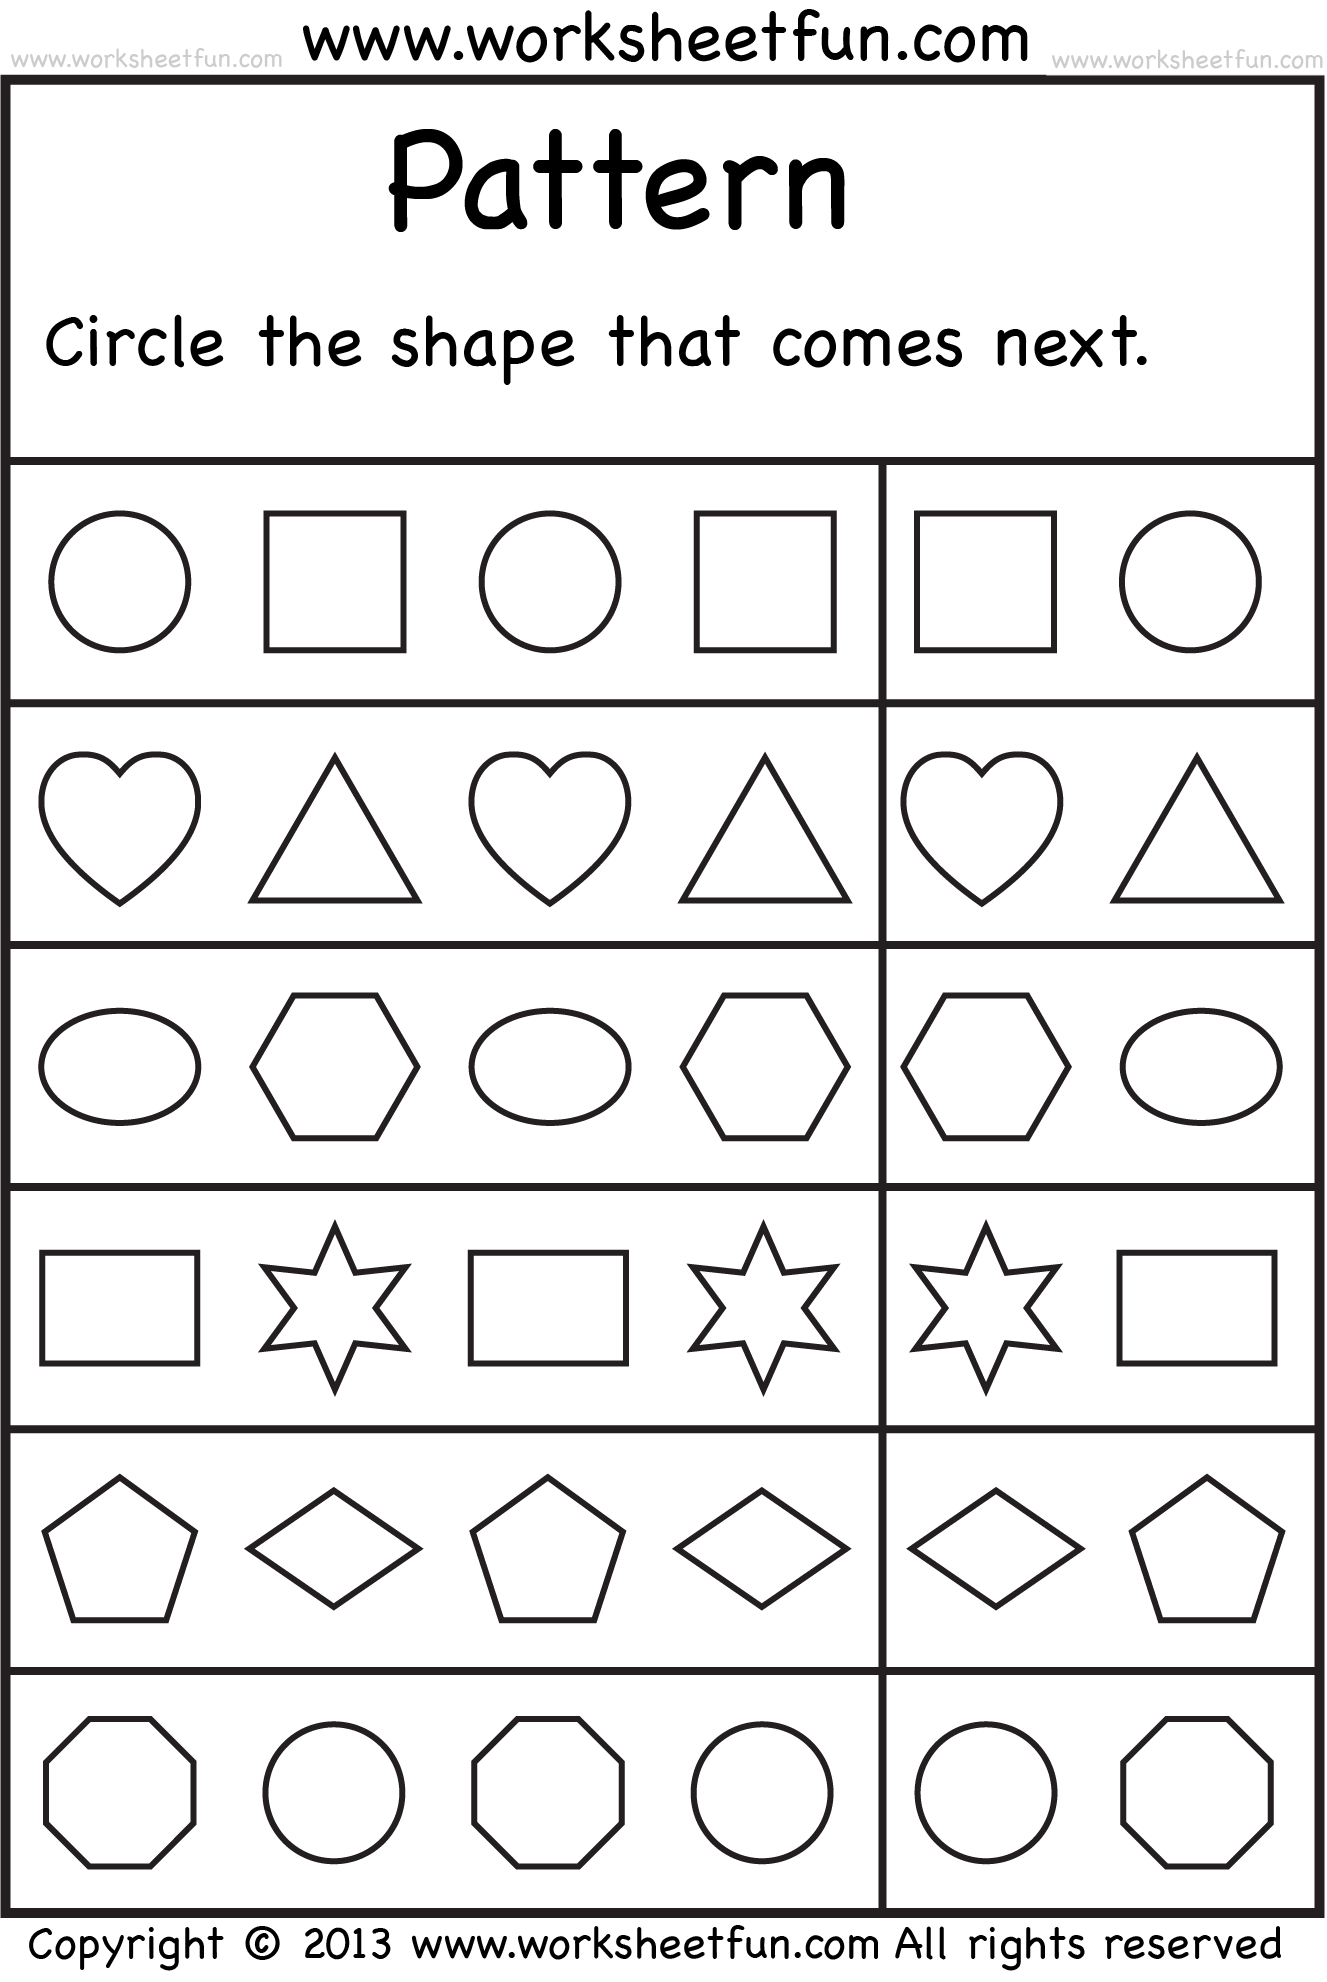 Weirdmailus  Pleasant  Images About School Worksheets On Pinterest  Number Words  With Glamorous  Images About School Worksheets On Pinterest  Number Words Alphabet Worksheets And Free Printable Kindergarten Worksheets With Awesome Worksheets For Year  Also Rounding To Decimal Places Worksheet In Addition Free Printable Dot To Dot Worksheets For Kindergarten And Counting Sets To  Worksheets As Well As Fractions Worksheets For Grade  Additionally Number Worksheets For Kindergarten  From Pinterestcom With Weirdmailus  Glamorous  Images About School Worksheets On Pinterest  Number Words  With Awesome  Images About School Worksheets On Pinterest  Number Words Alphabet Worksheets And Free Printable Kindergarten Worksheets And Pleasant Worksheets For Year  Also Rounding To Decimal Places Worksheet In Addition Free Printable Dot To Dot Worksheets For Kindergarten From Pinterestcom